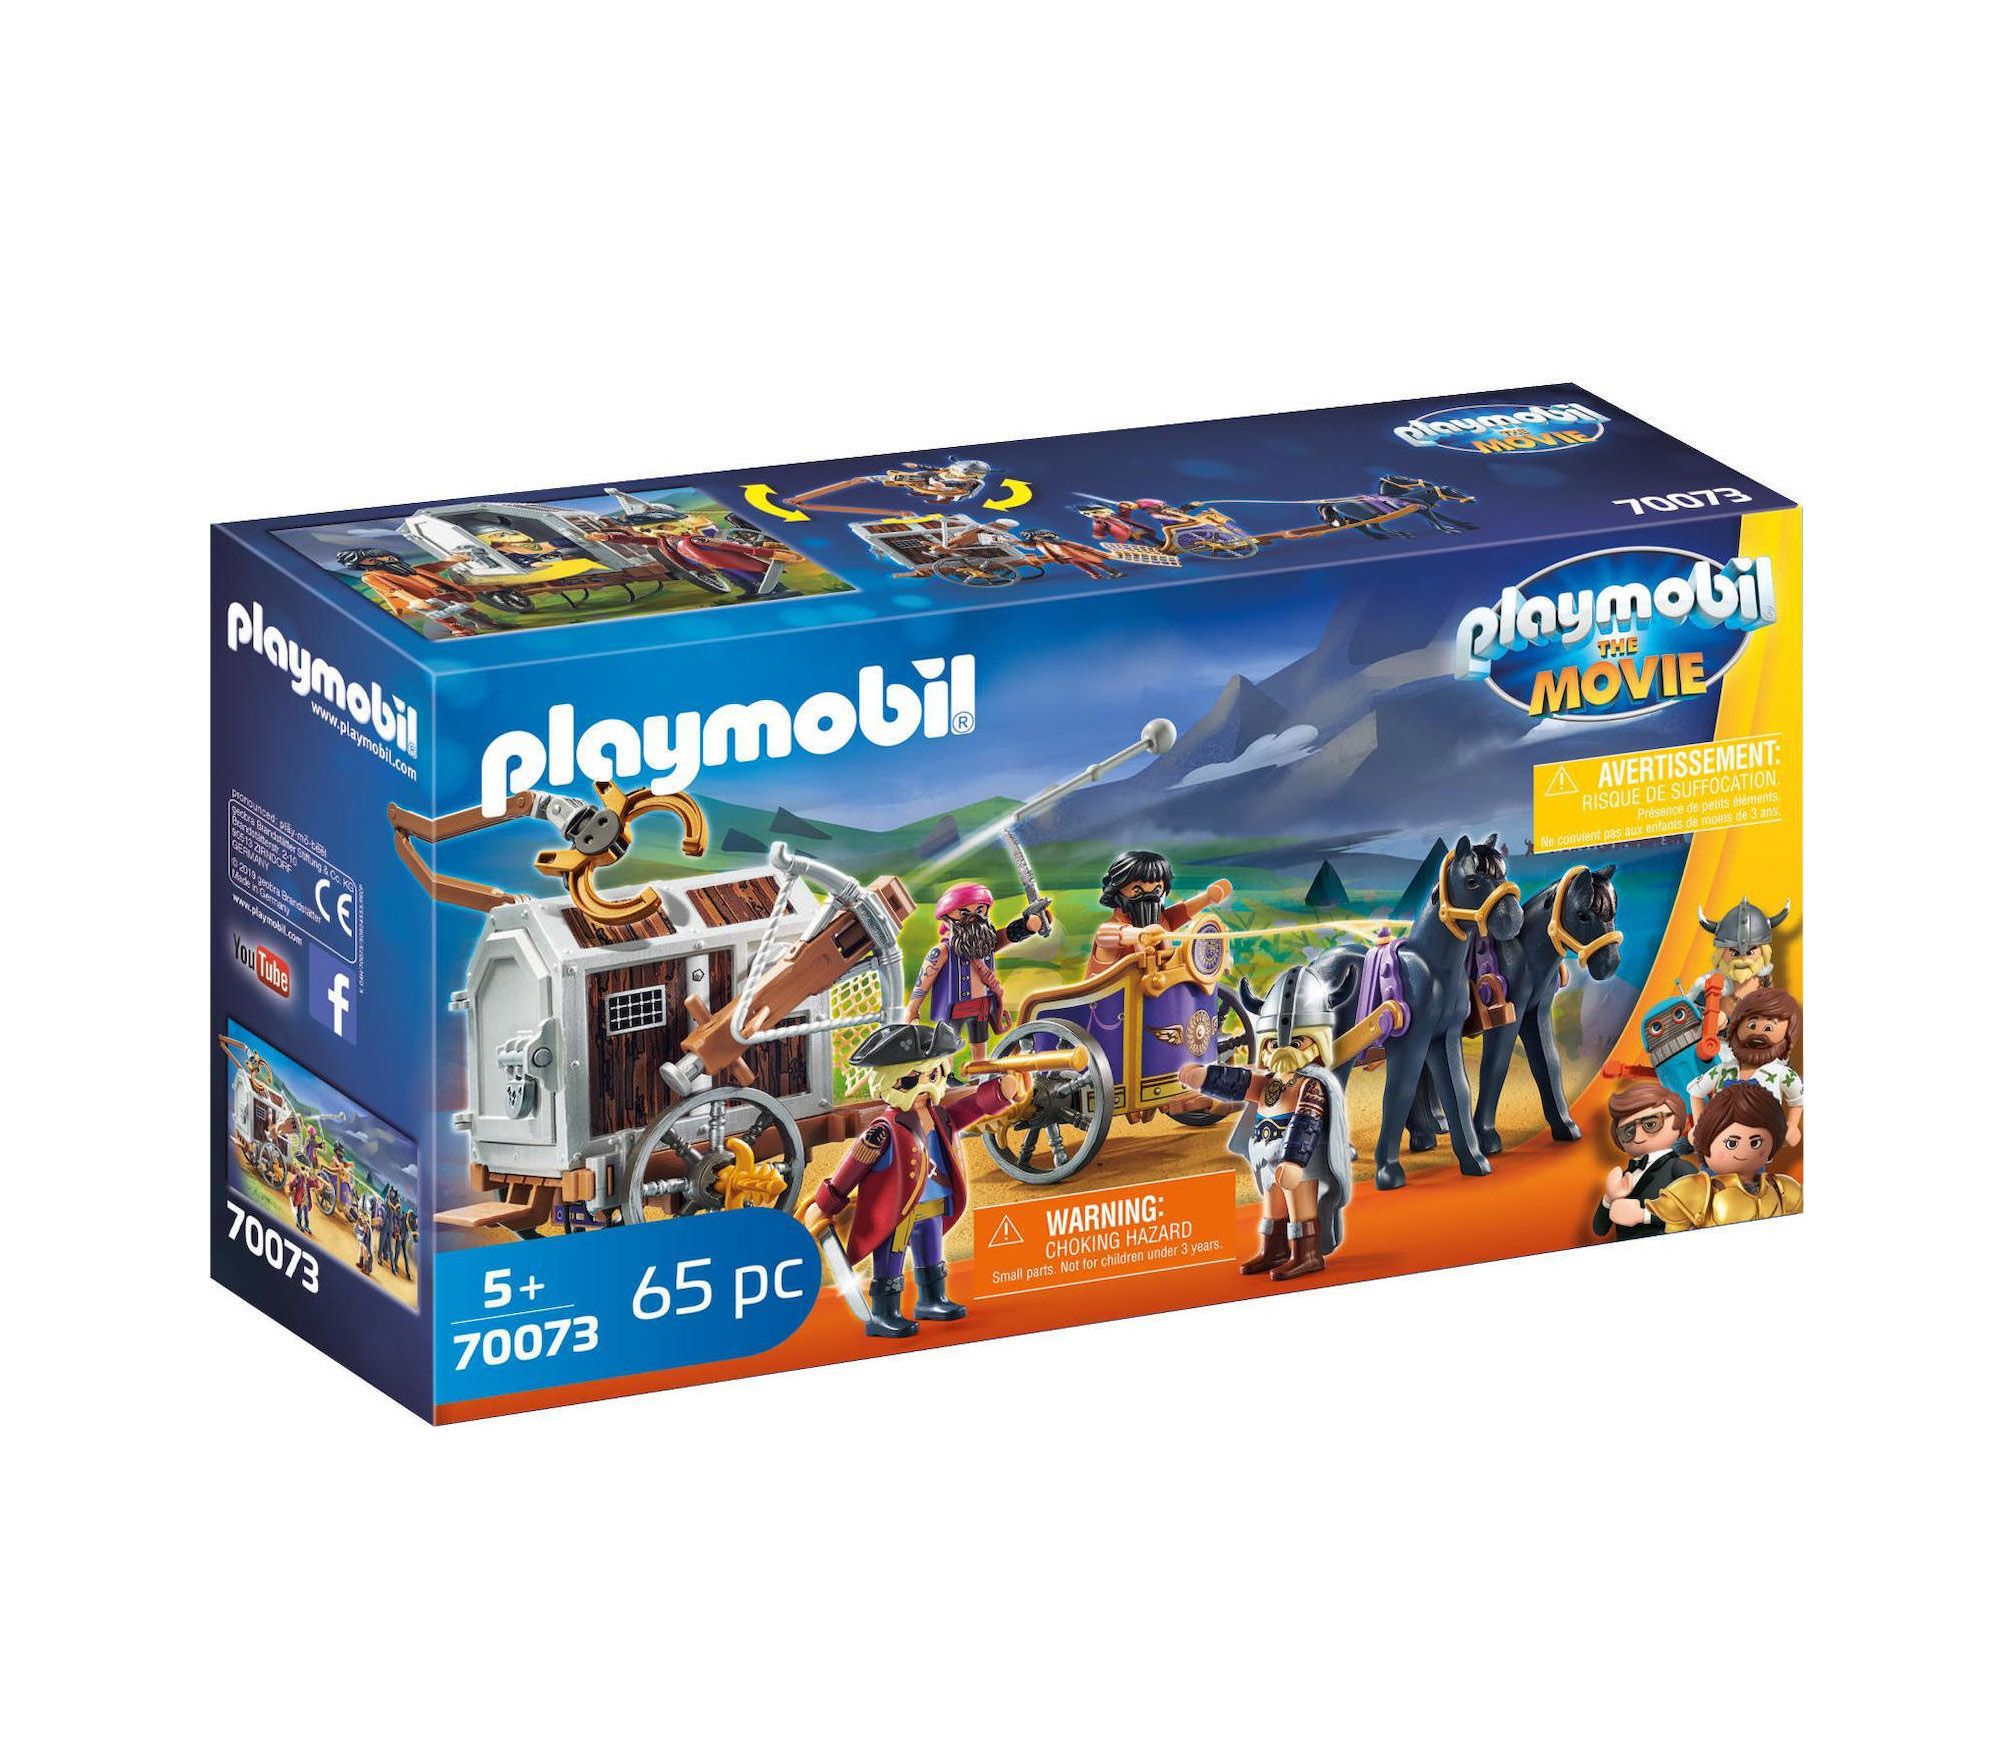 Playmobil The Movie: Charlie with Prison Wagon 70073